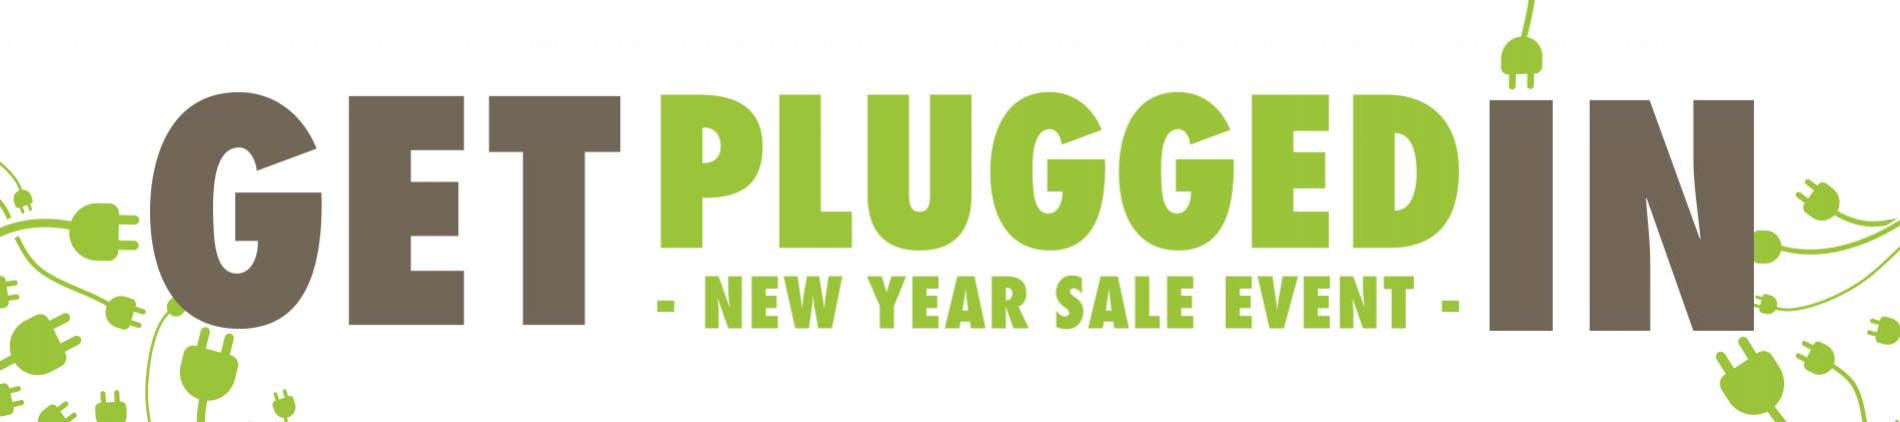 Get Plugged In Campaign Banner